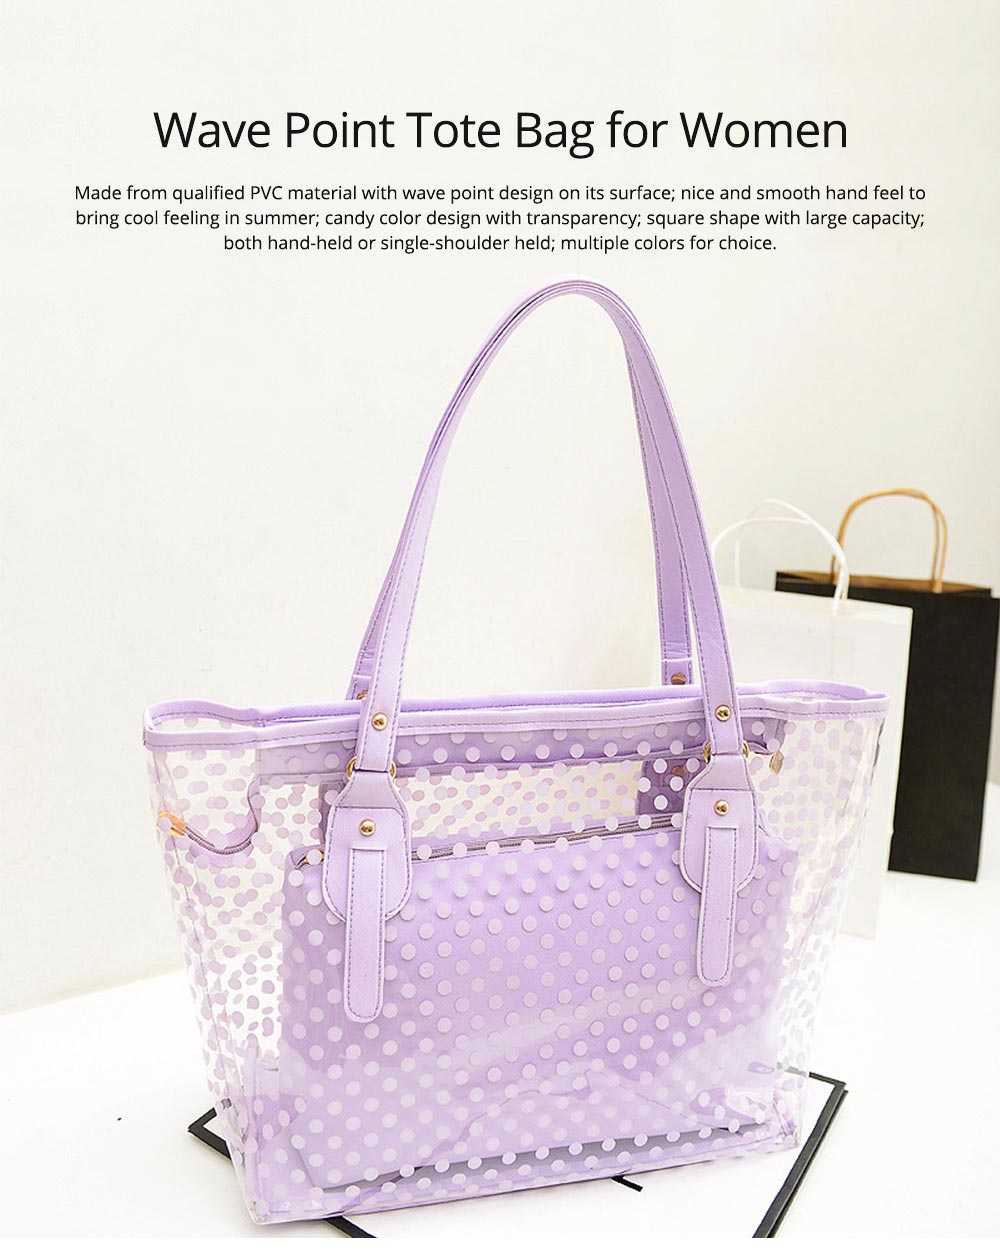 Fresh Color Tote Bag for Women Summer Use Jelly Handbag Wave Point Waterproof PVC Beach Used Crystal Single Shoulder Held Bag 0